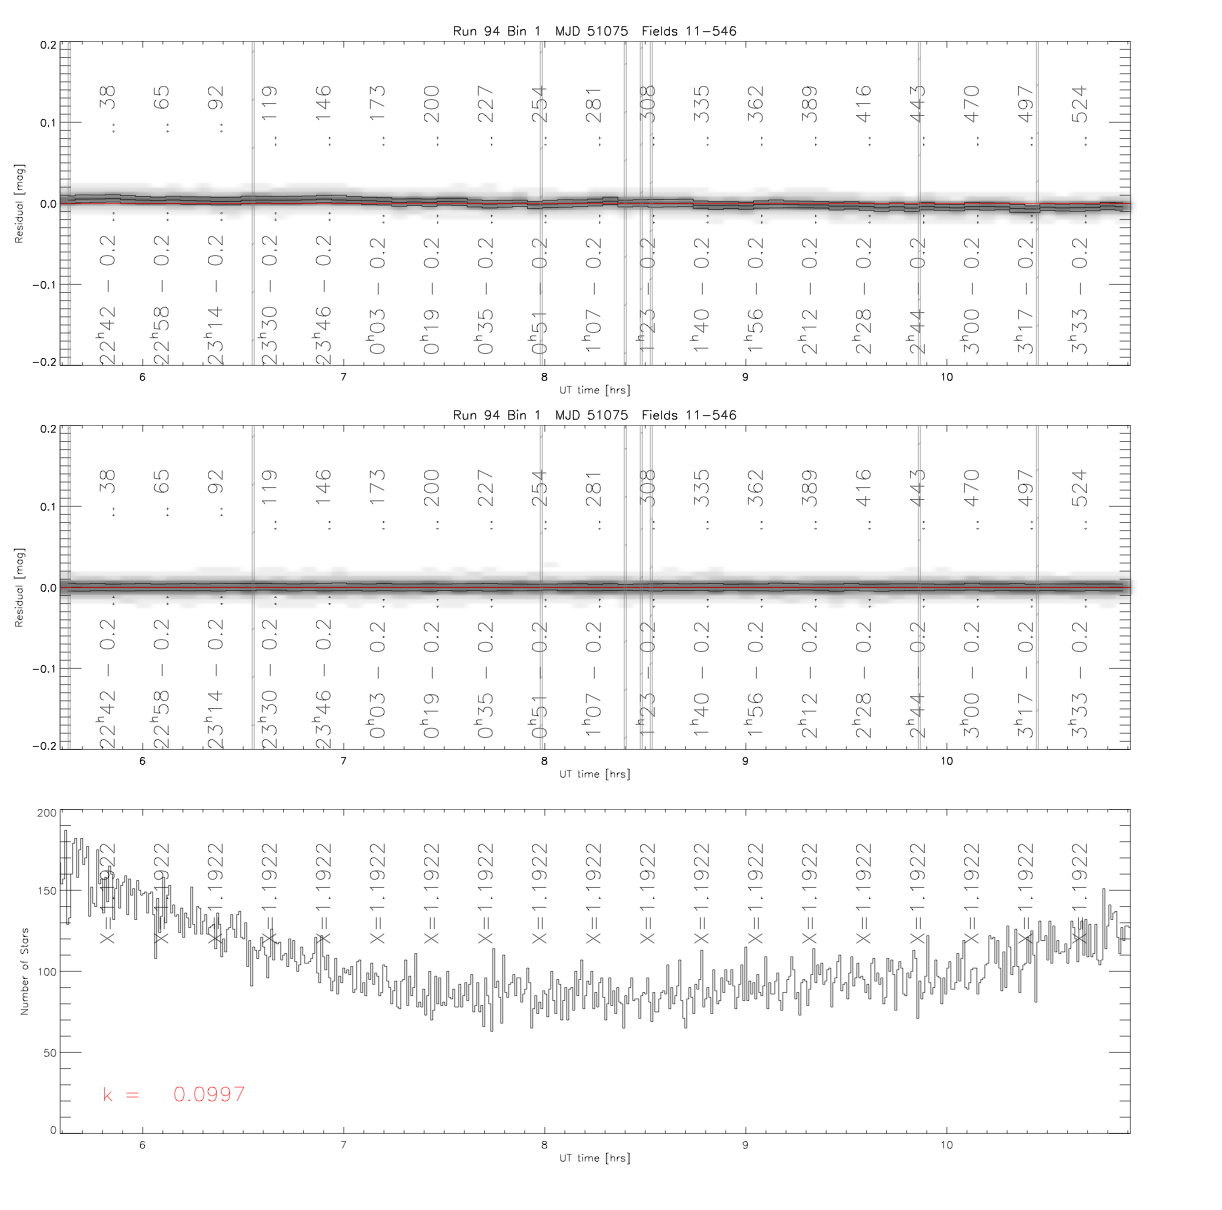 An example page of QA figures for Run 94 in the <i>r</i> band. The figure shows the mean photometric residuals as a function of field and time along the run, for the best fit photometric parameters (top panel) and correcting for overlap photometry (middle panel), with the 25%, 50% and 75% contours plotted. The bottom panel shows the number of stars used by the calibration algorithm.